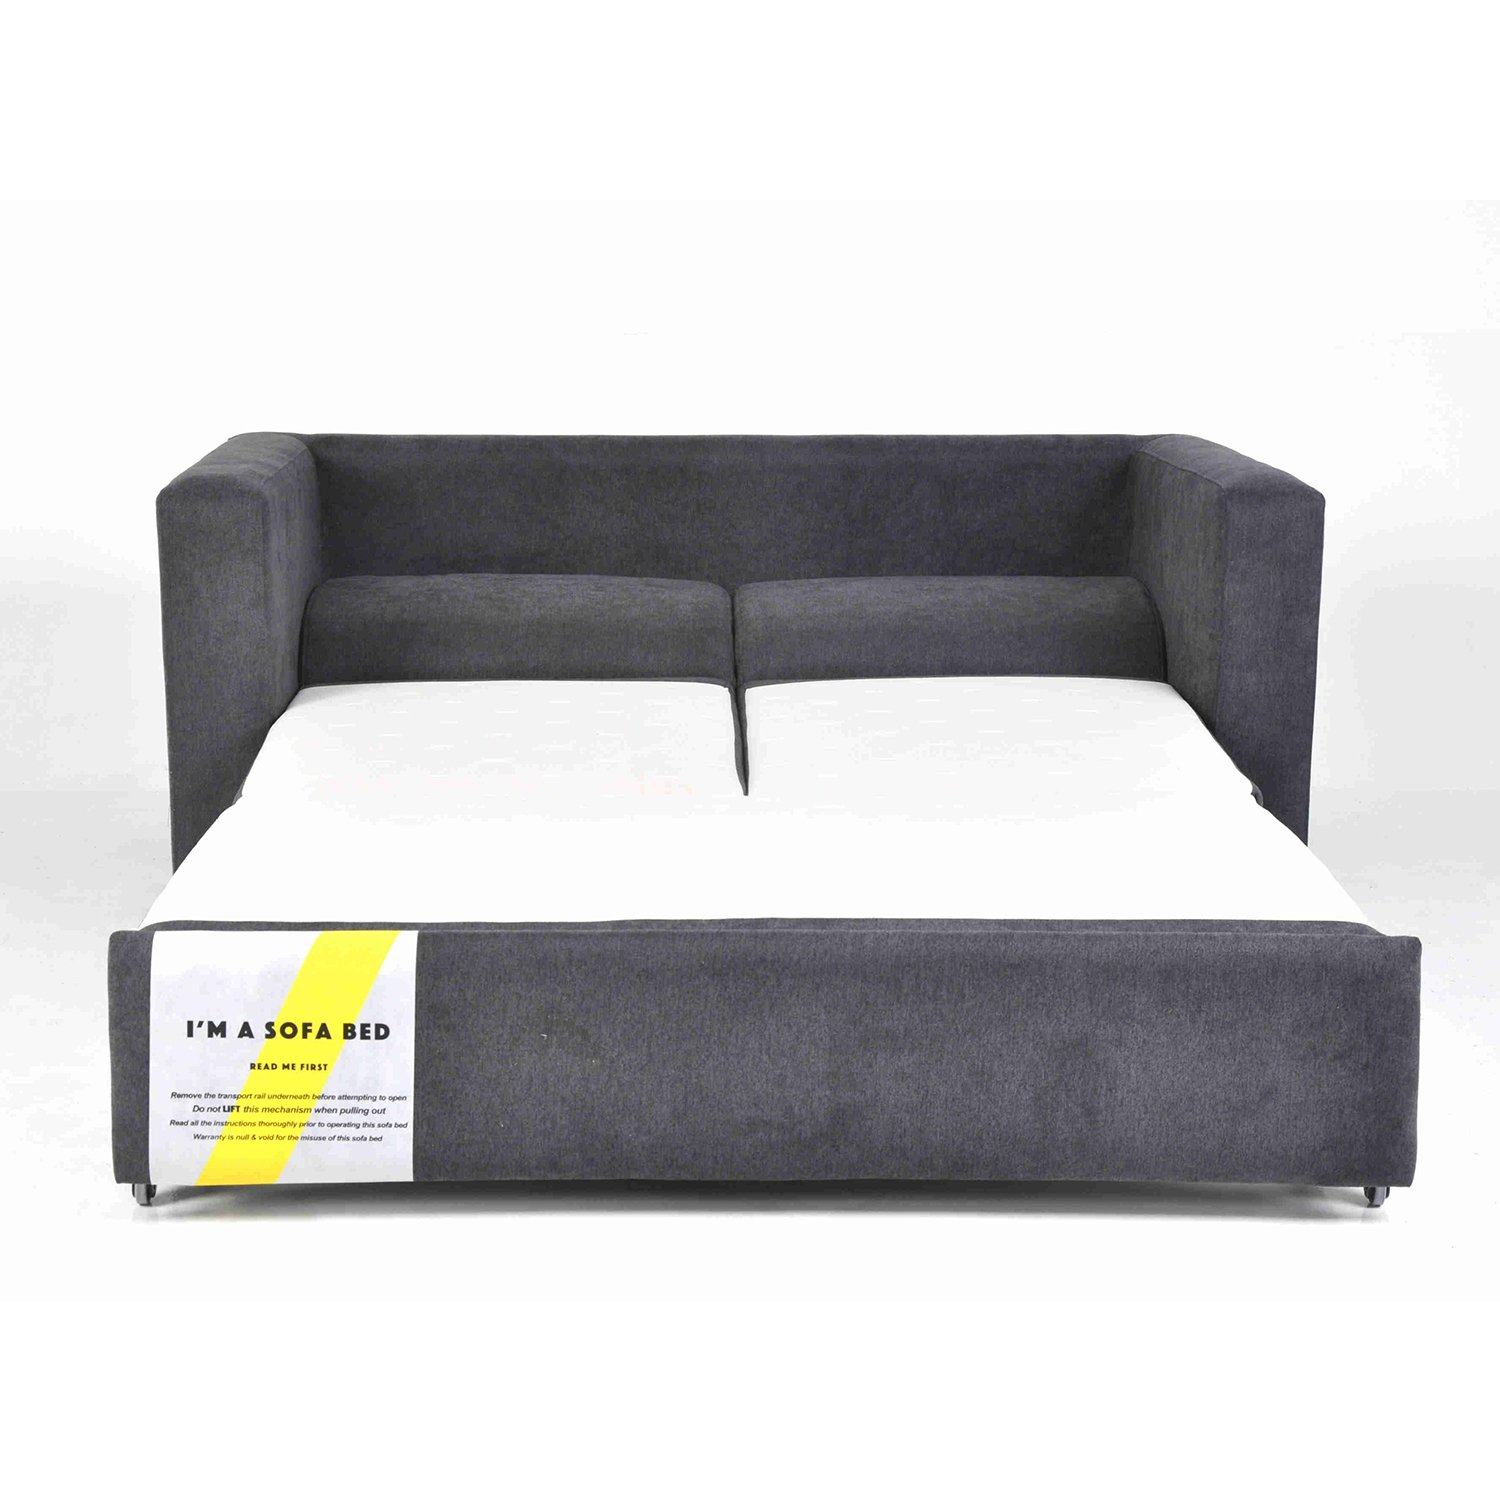 Living Room Furniture Sofa Pull Out Sofa Bed Dealxeed